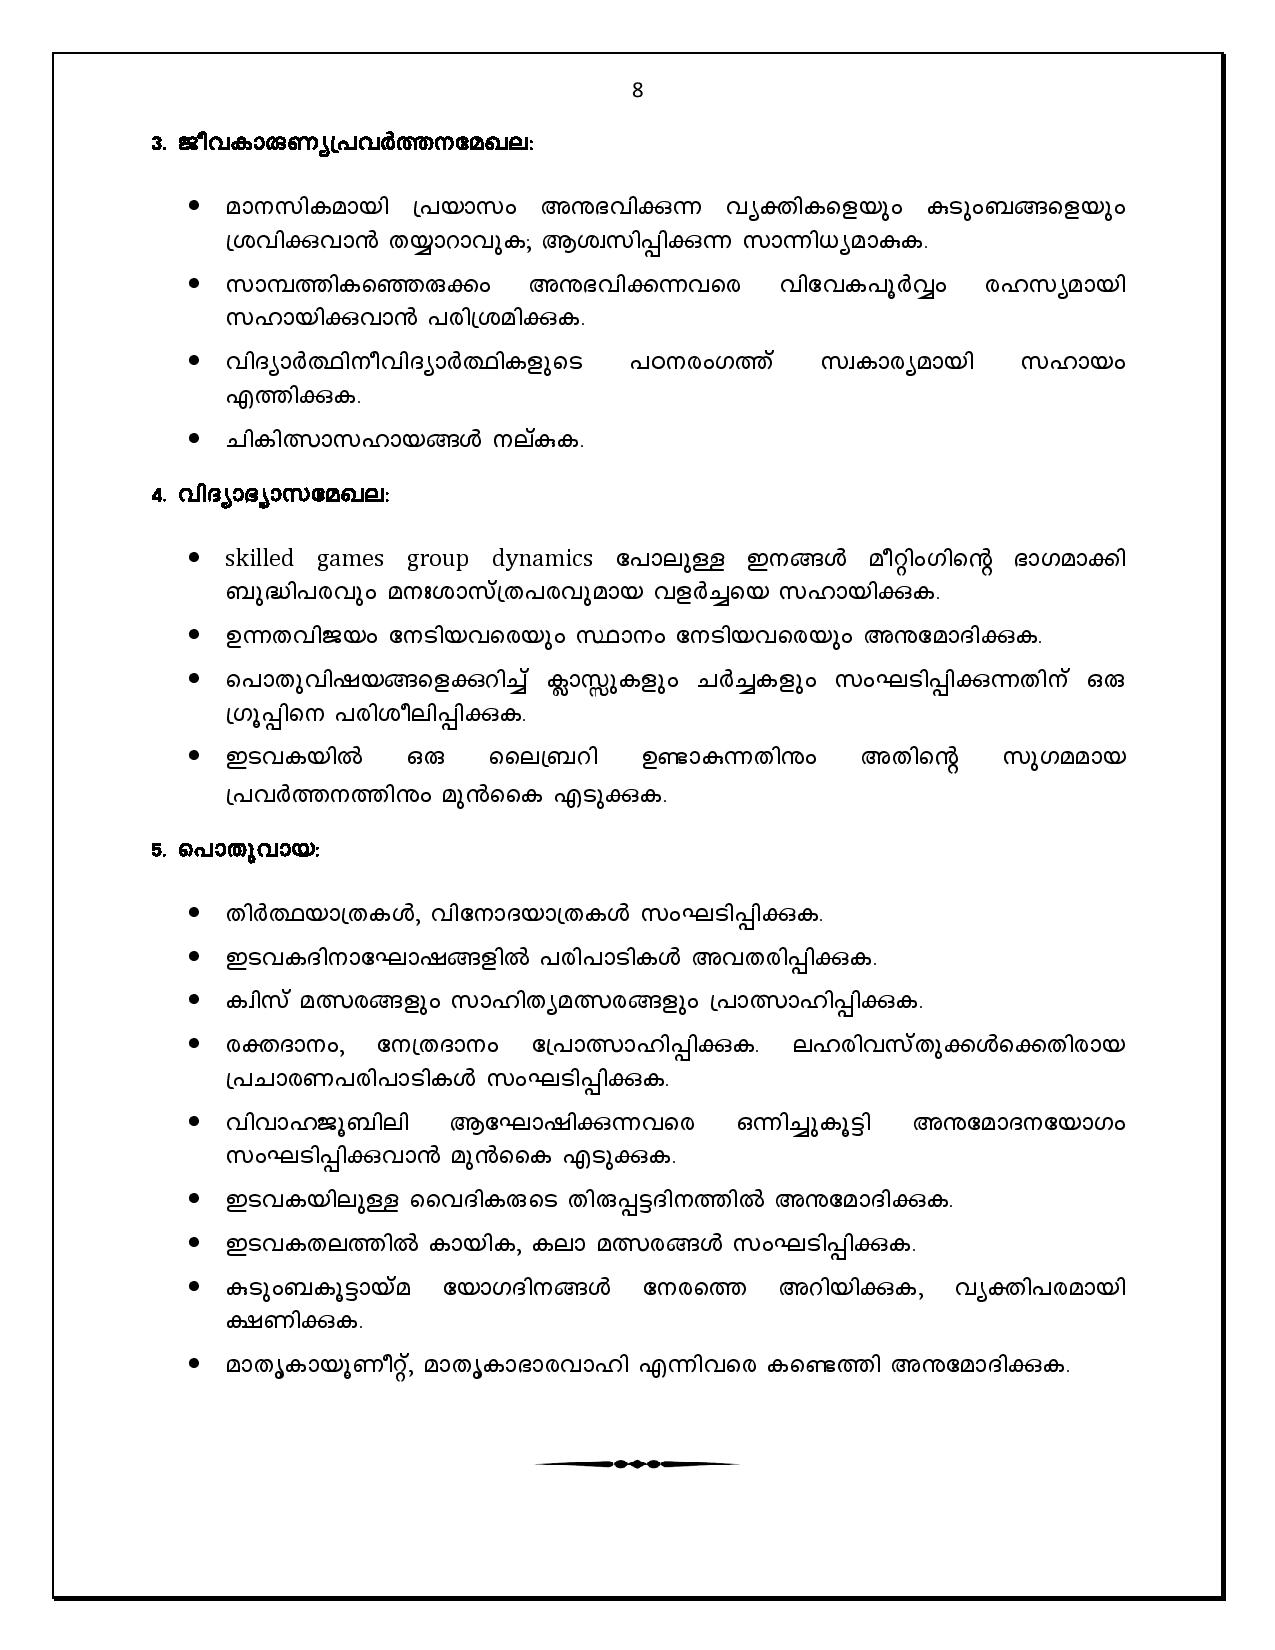 family-unit-rules-page-008